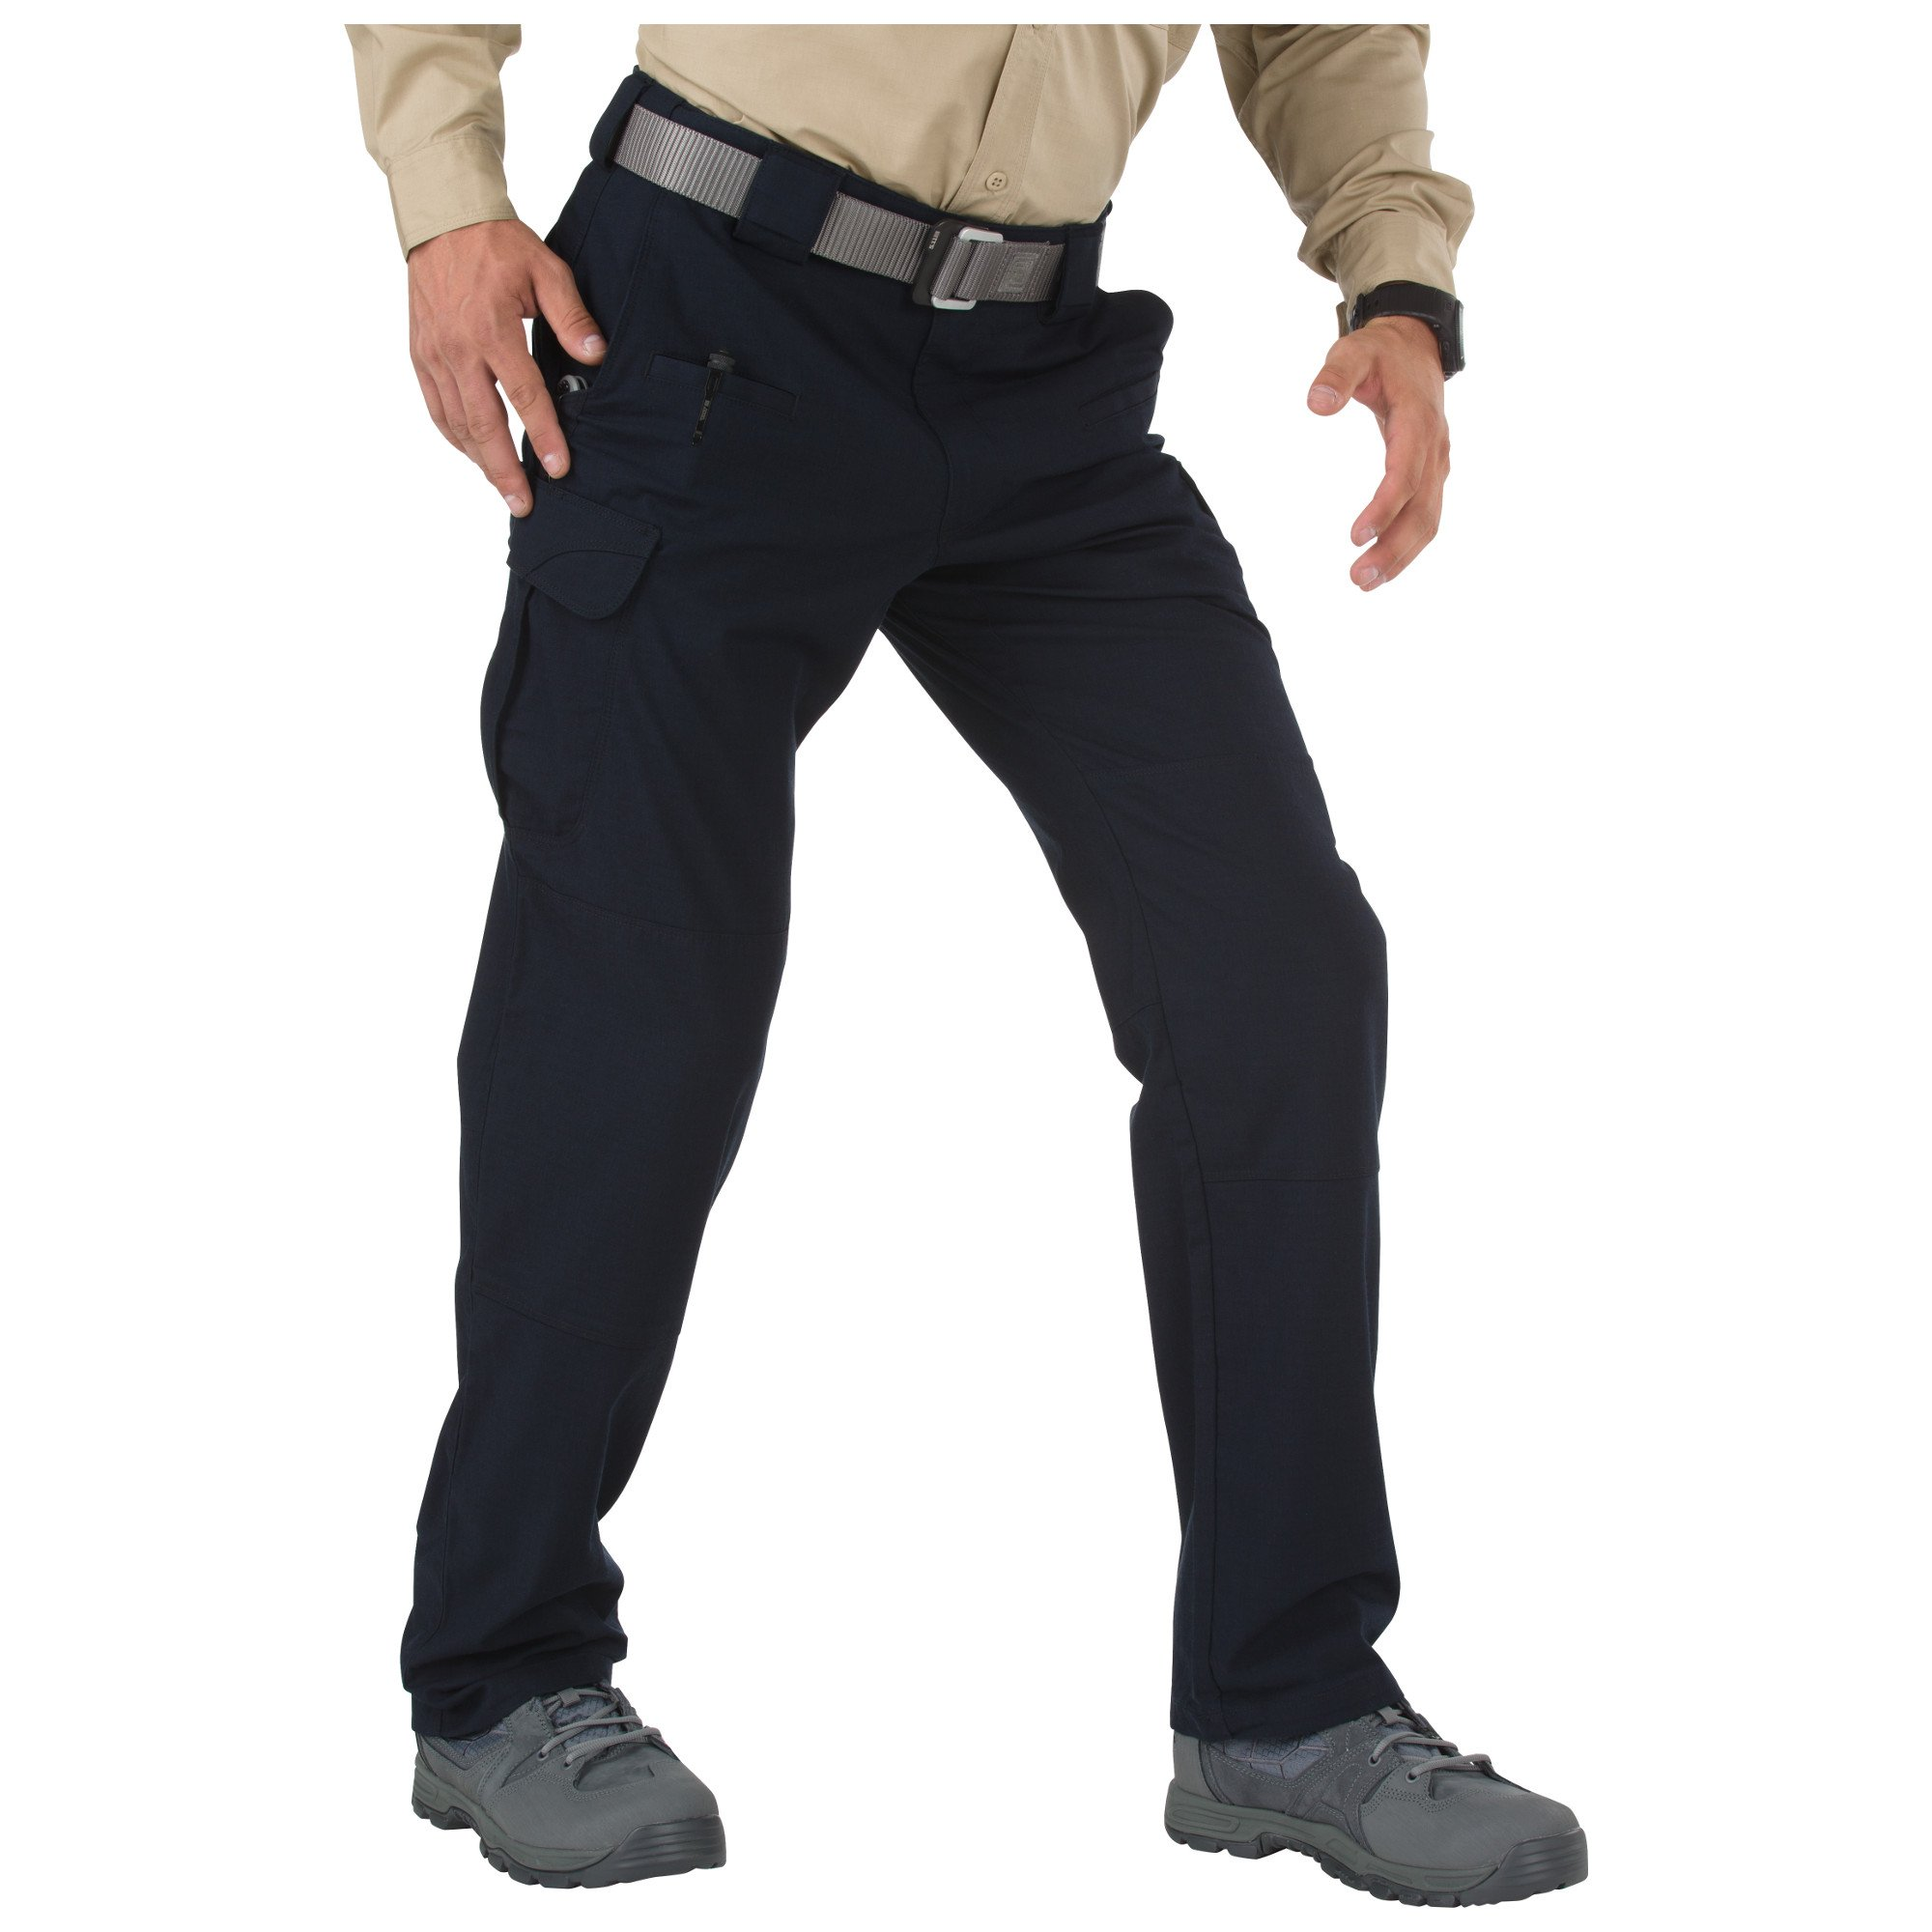 5.11 Tactical Stryke Pant, Dark Navy, 28x34 by 5.11